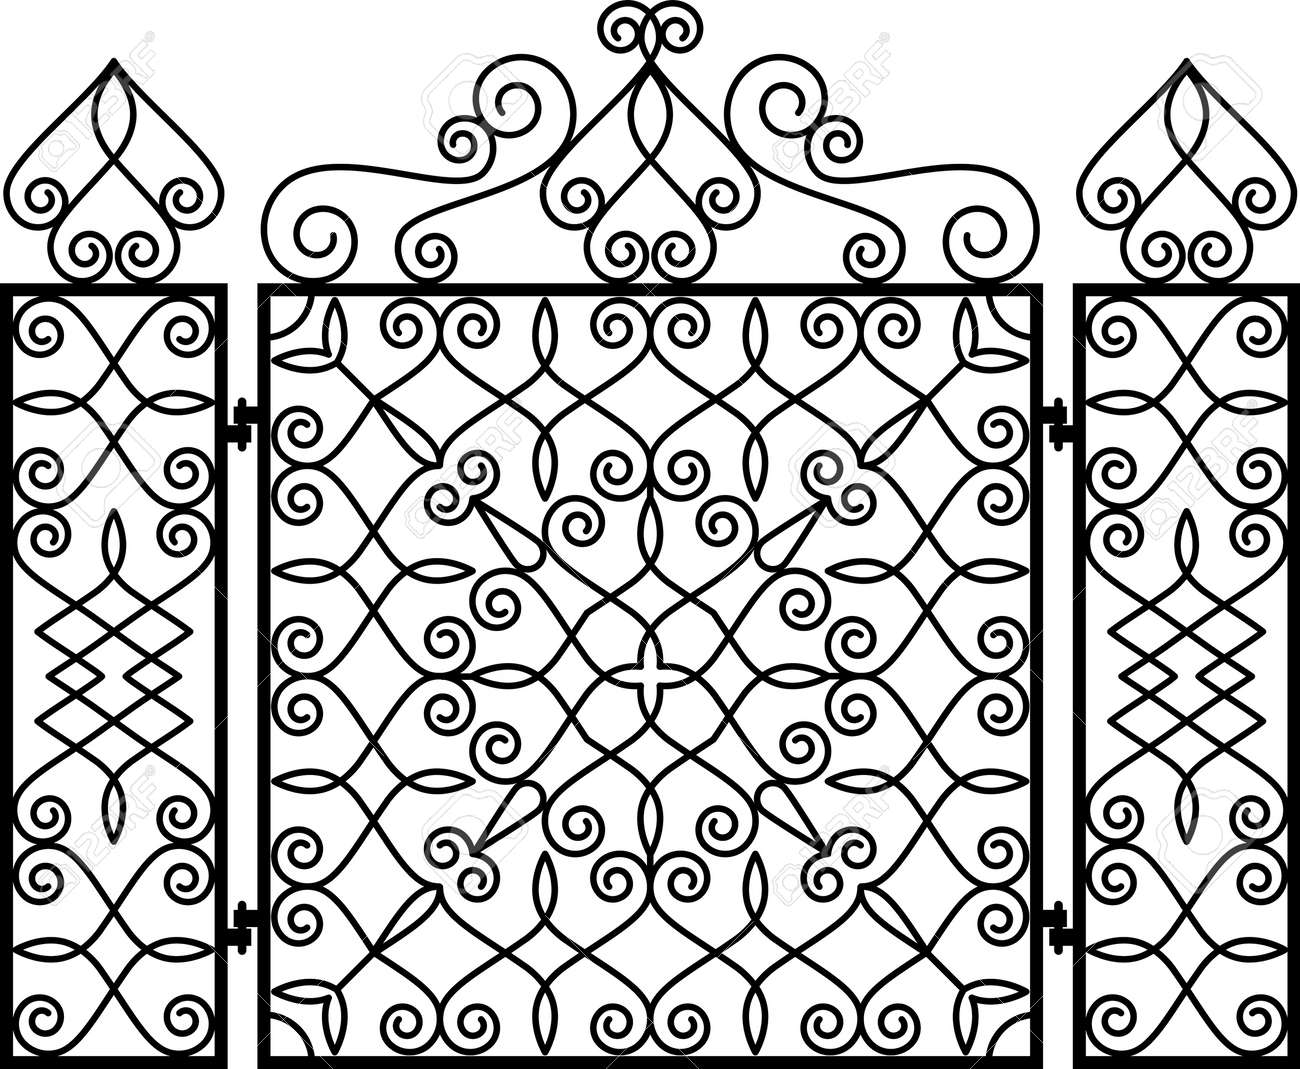 Wrought Iron Fireplace Screen Vector Illustration